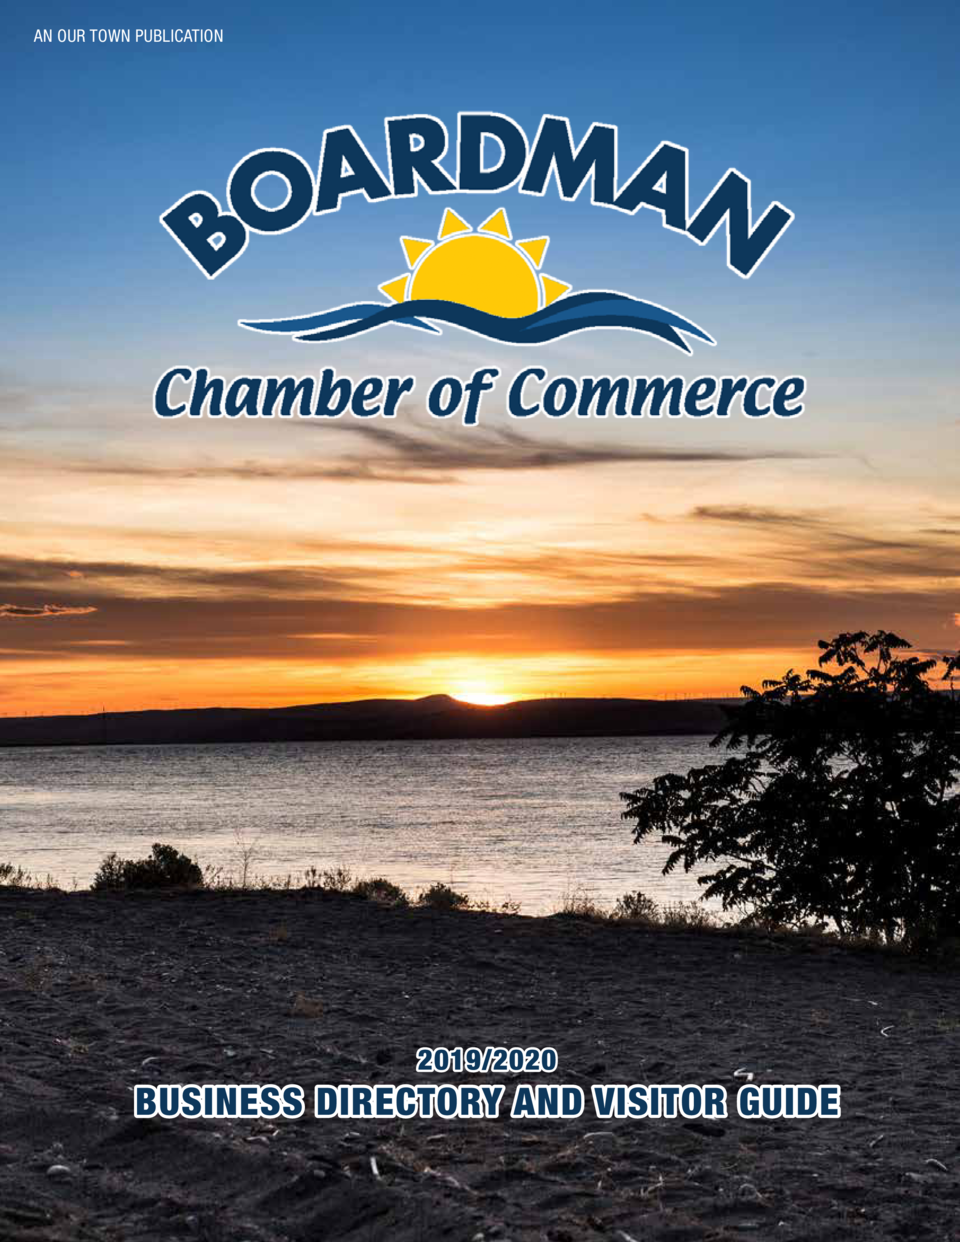 AN OUR TOWN PUBLICATION  2019 2020  BUSINESS DIRECTORY AND VISITOR GUIDE 1